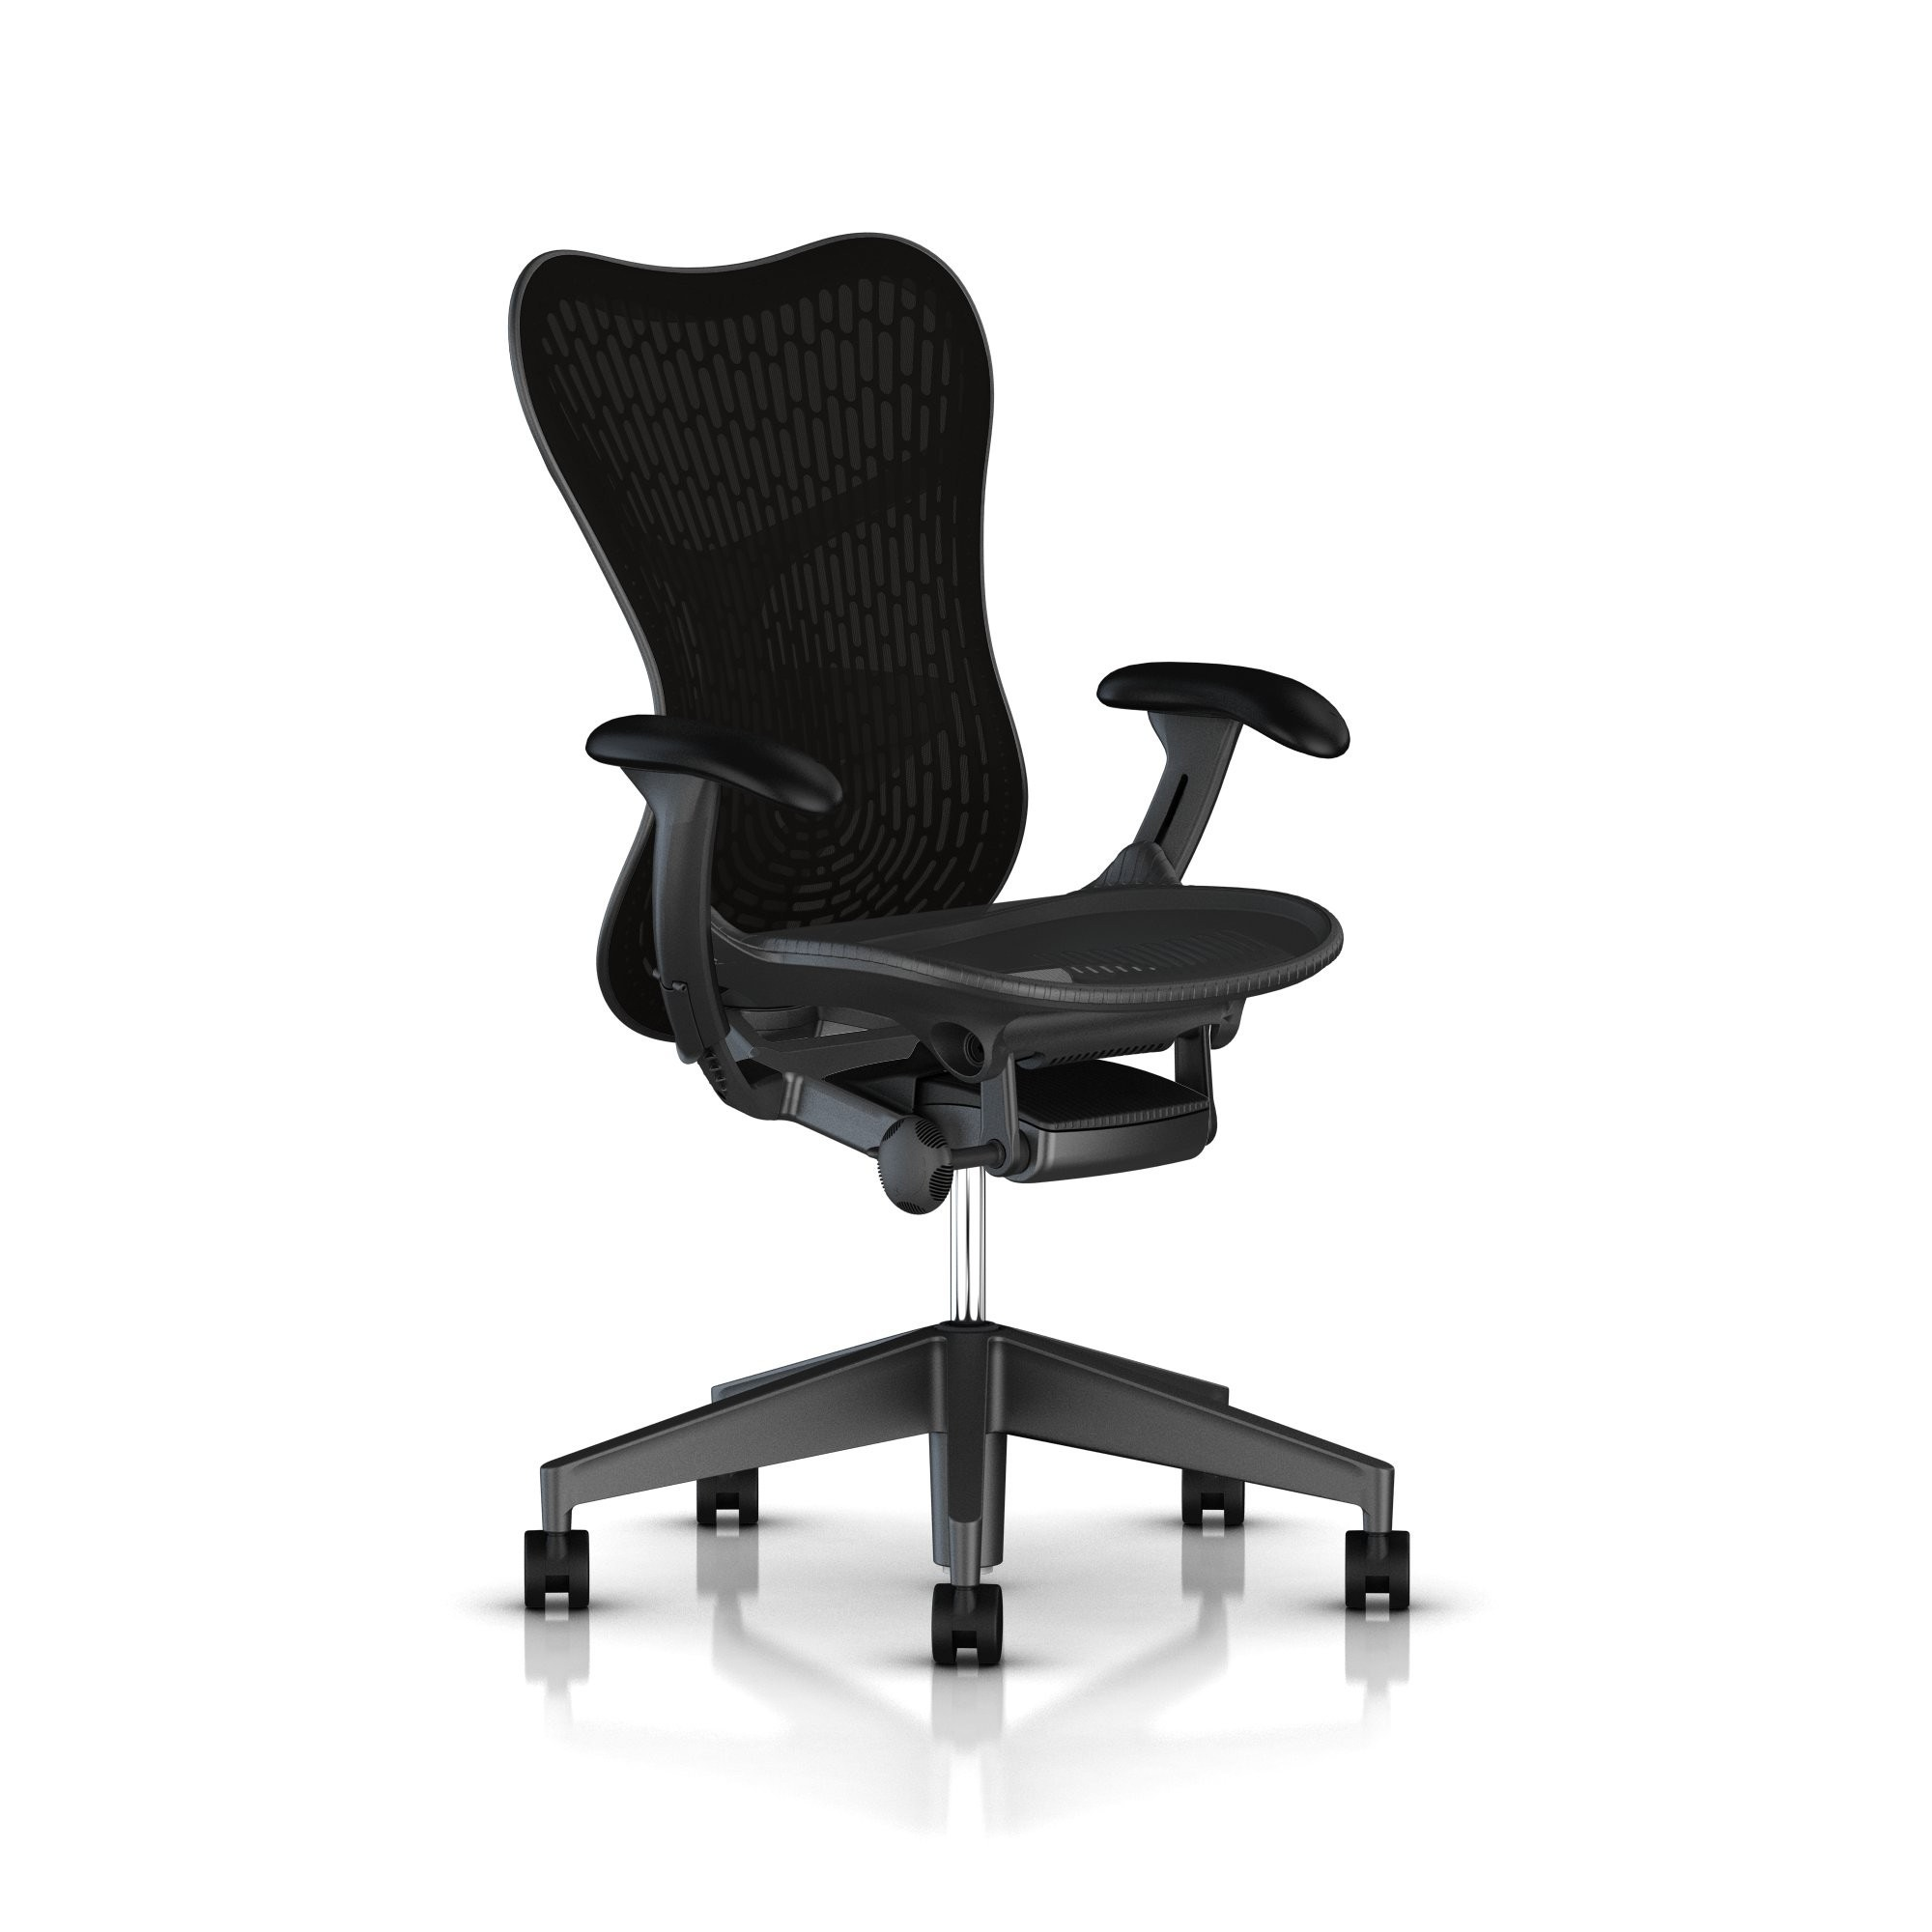 Herman Miller Mirra® 2 Chair - Basic